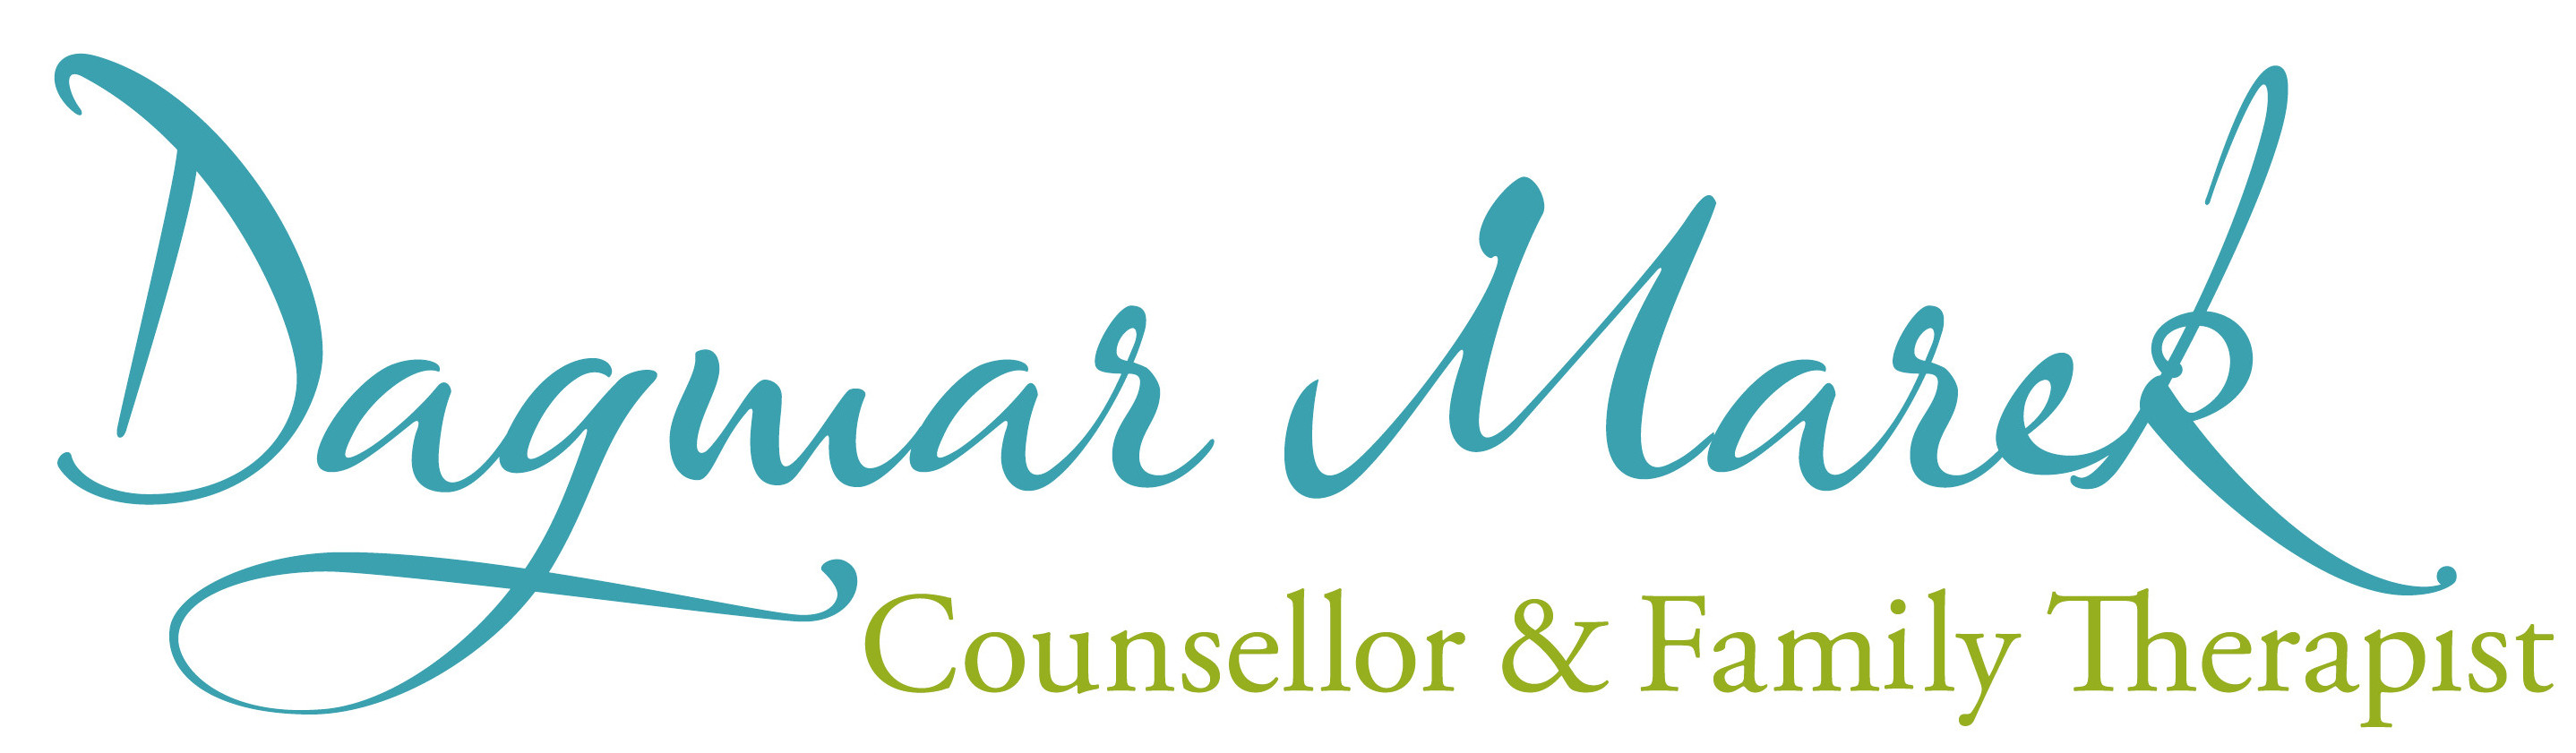 Counsellor & Family Therapist